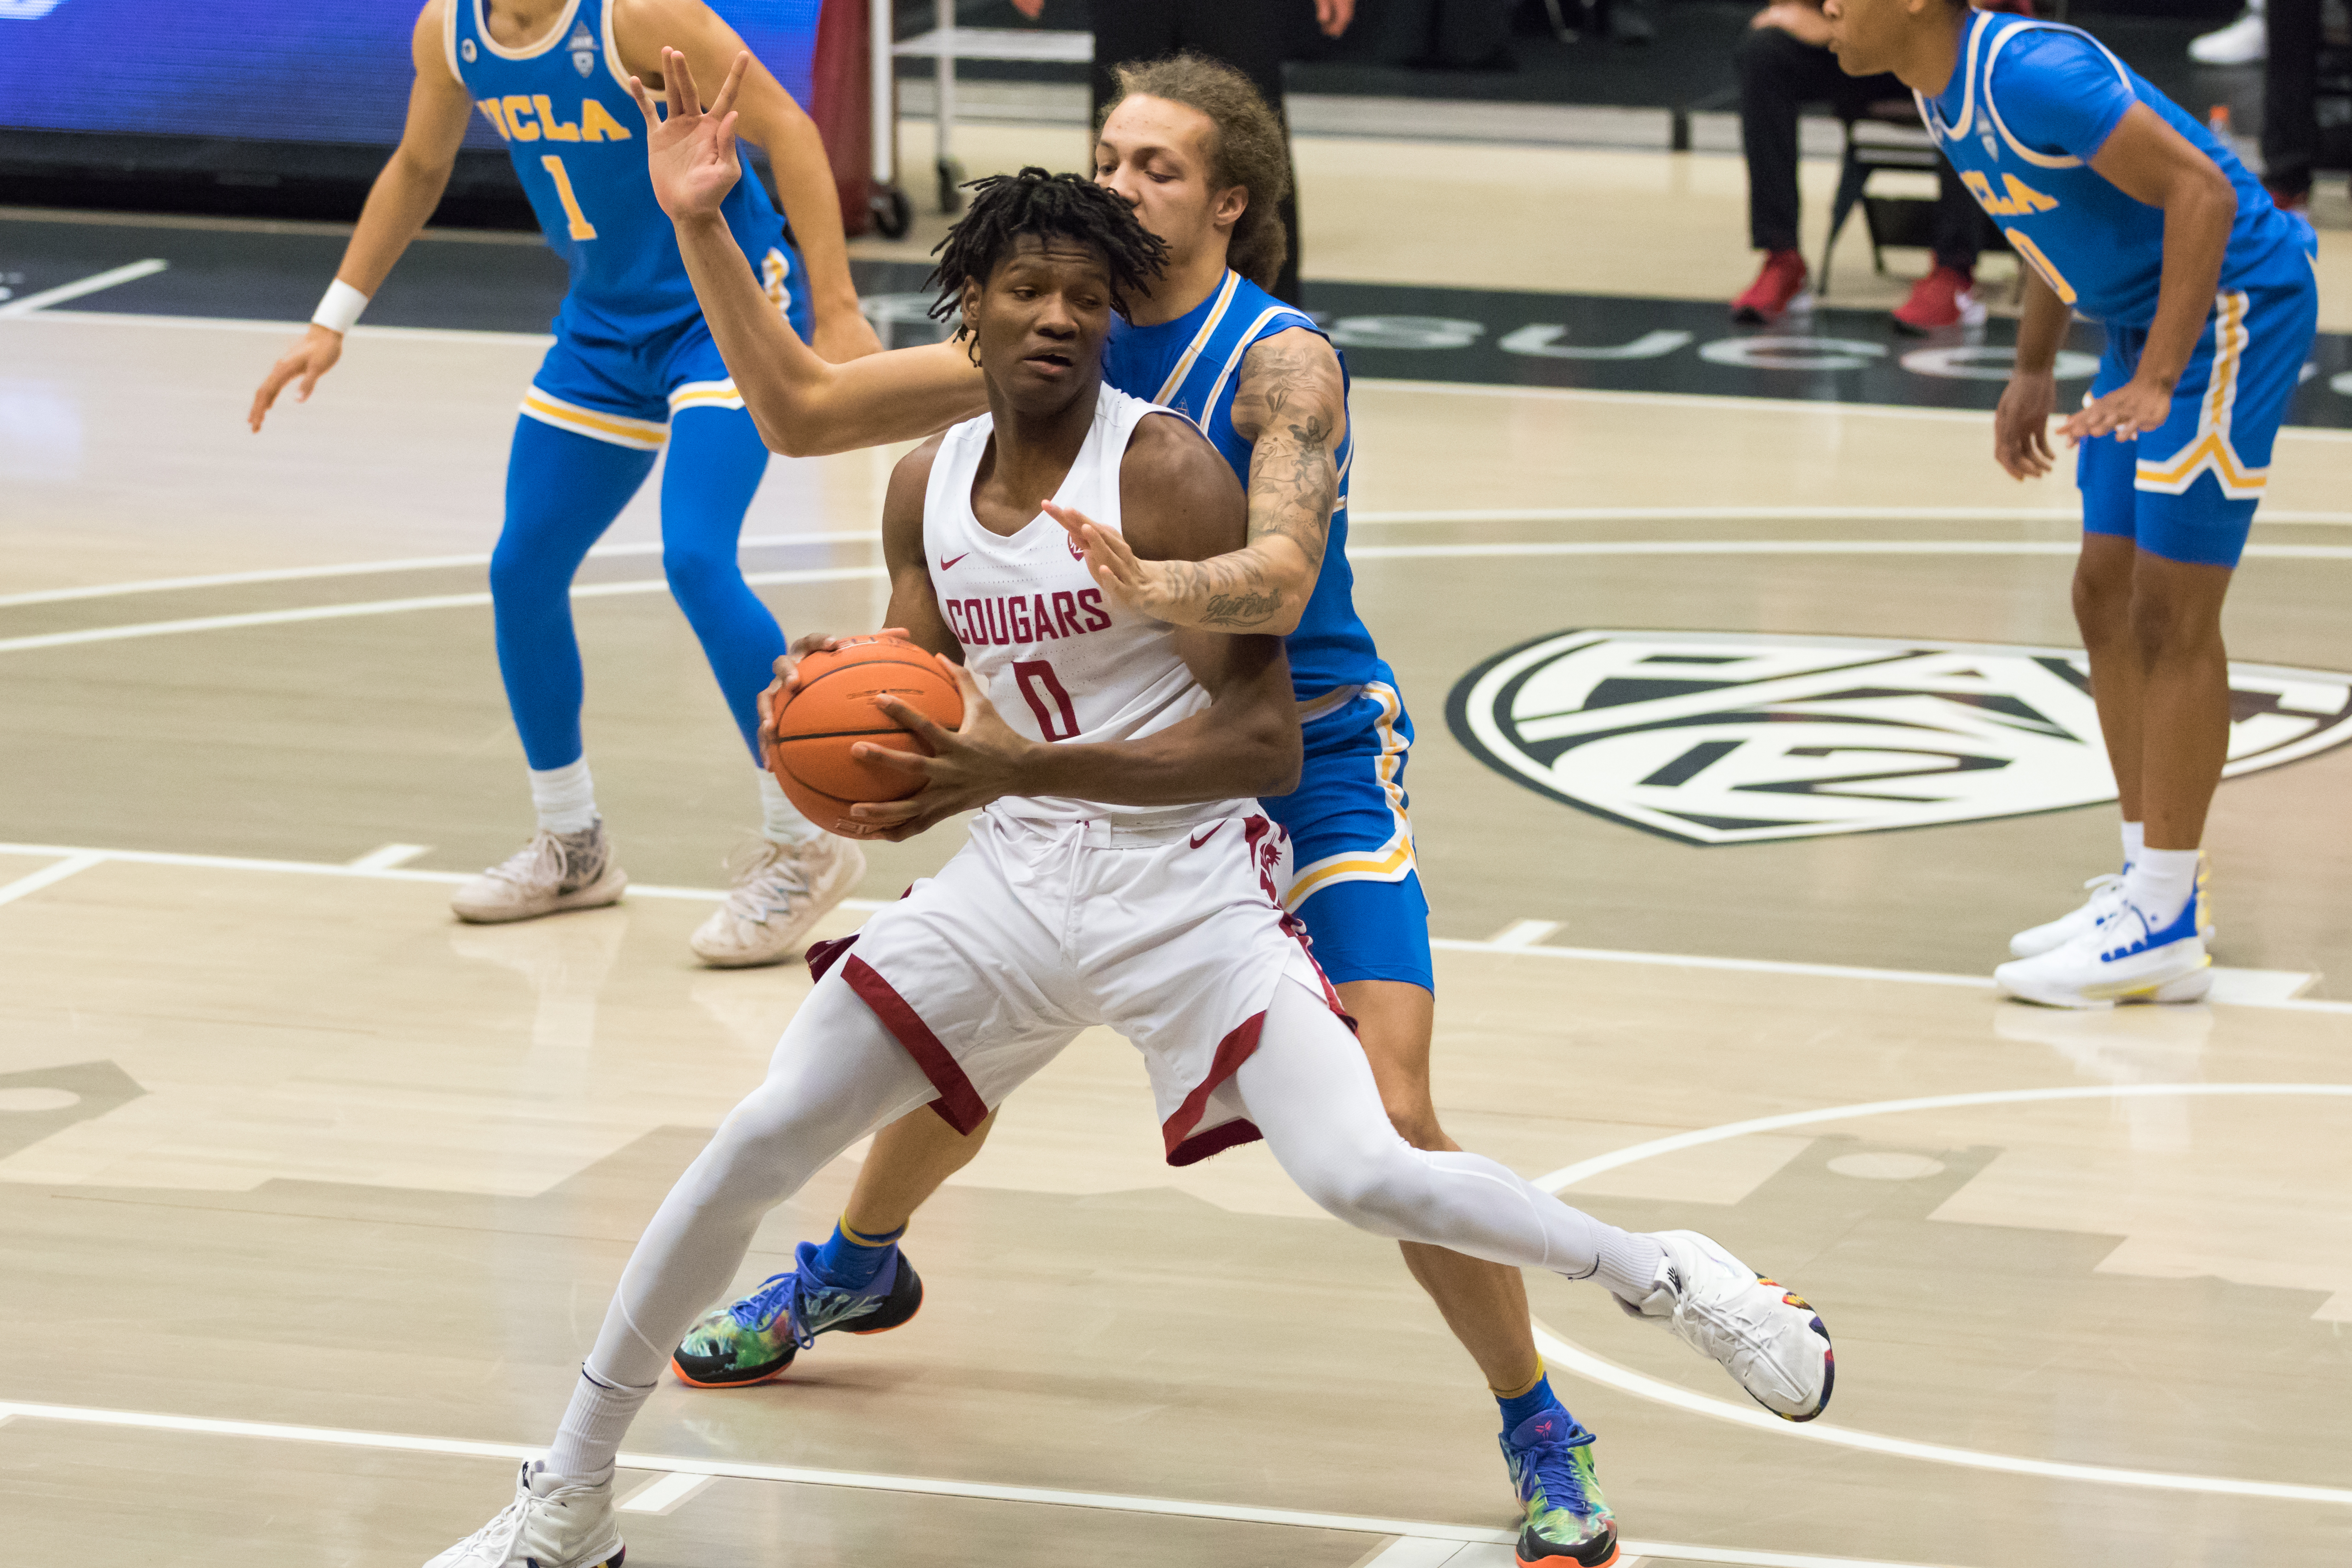 PULLMAN, WA - FEBRUARY 11: Washington State center Efe Abogidi (0) fights through pressure en route to the hoop during the second half of a Pac 12 matchup between the UCLA Bruins and the Washington State Cougars on February 11, 2021, at Beasley Coliseum in Pullman, WA.